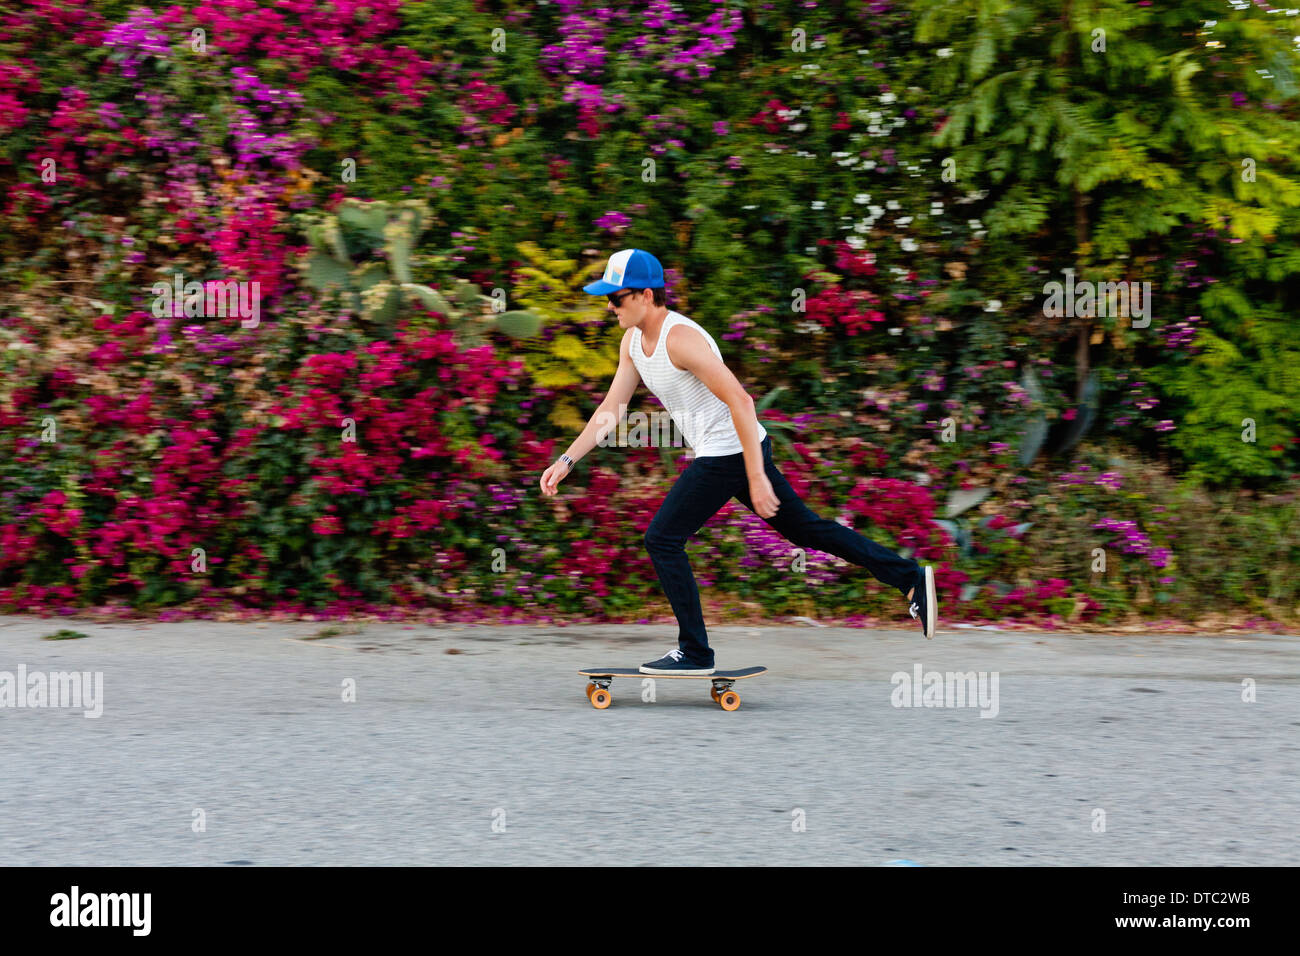 Young man skateboarding along suburban sidewalk - Stock Image